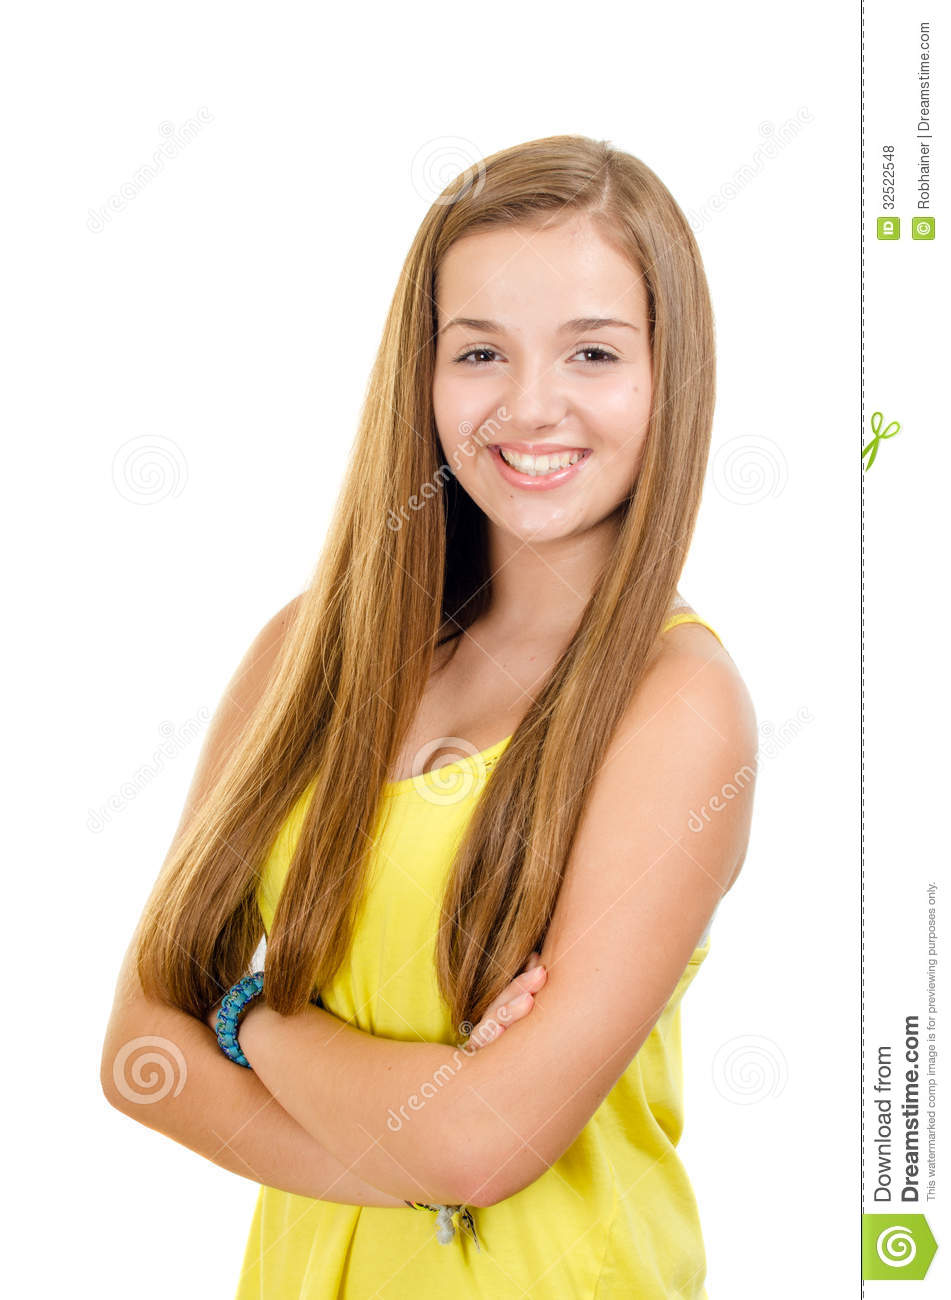 Portrait Of Pretty, Teen Girl Smiling Stock Photo